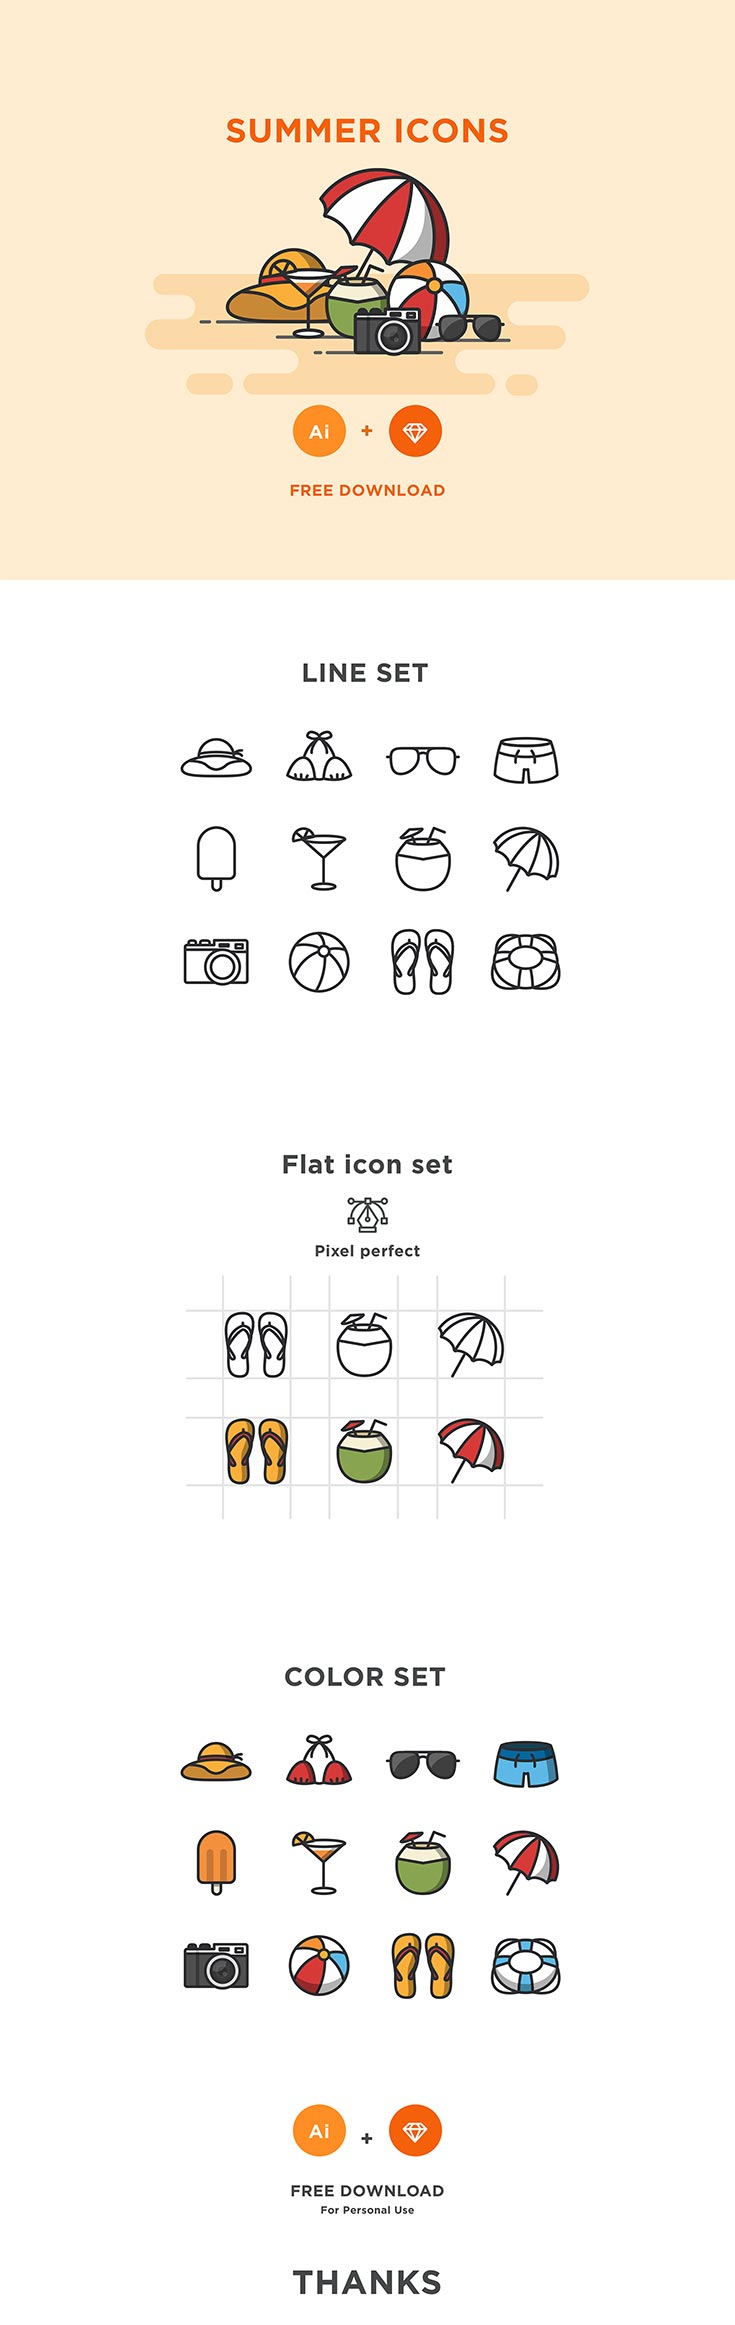 Free Summer Icons Set is amodern collection pack of 12 amazing icons that comes in Al and Sketch formats and well-crafted icons set covering the niche.